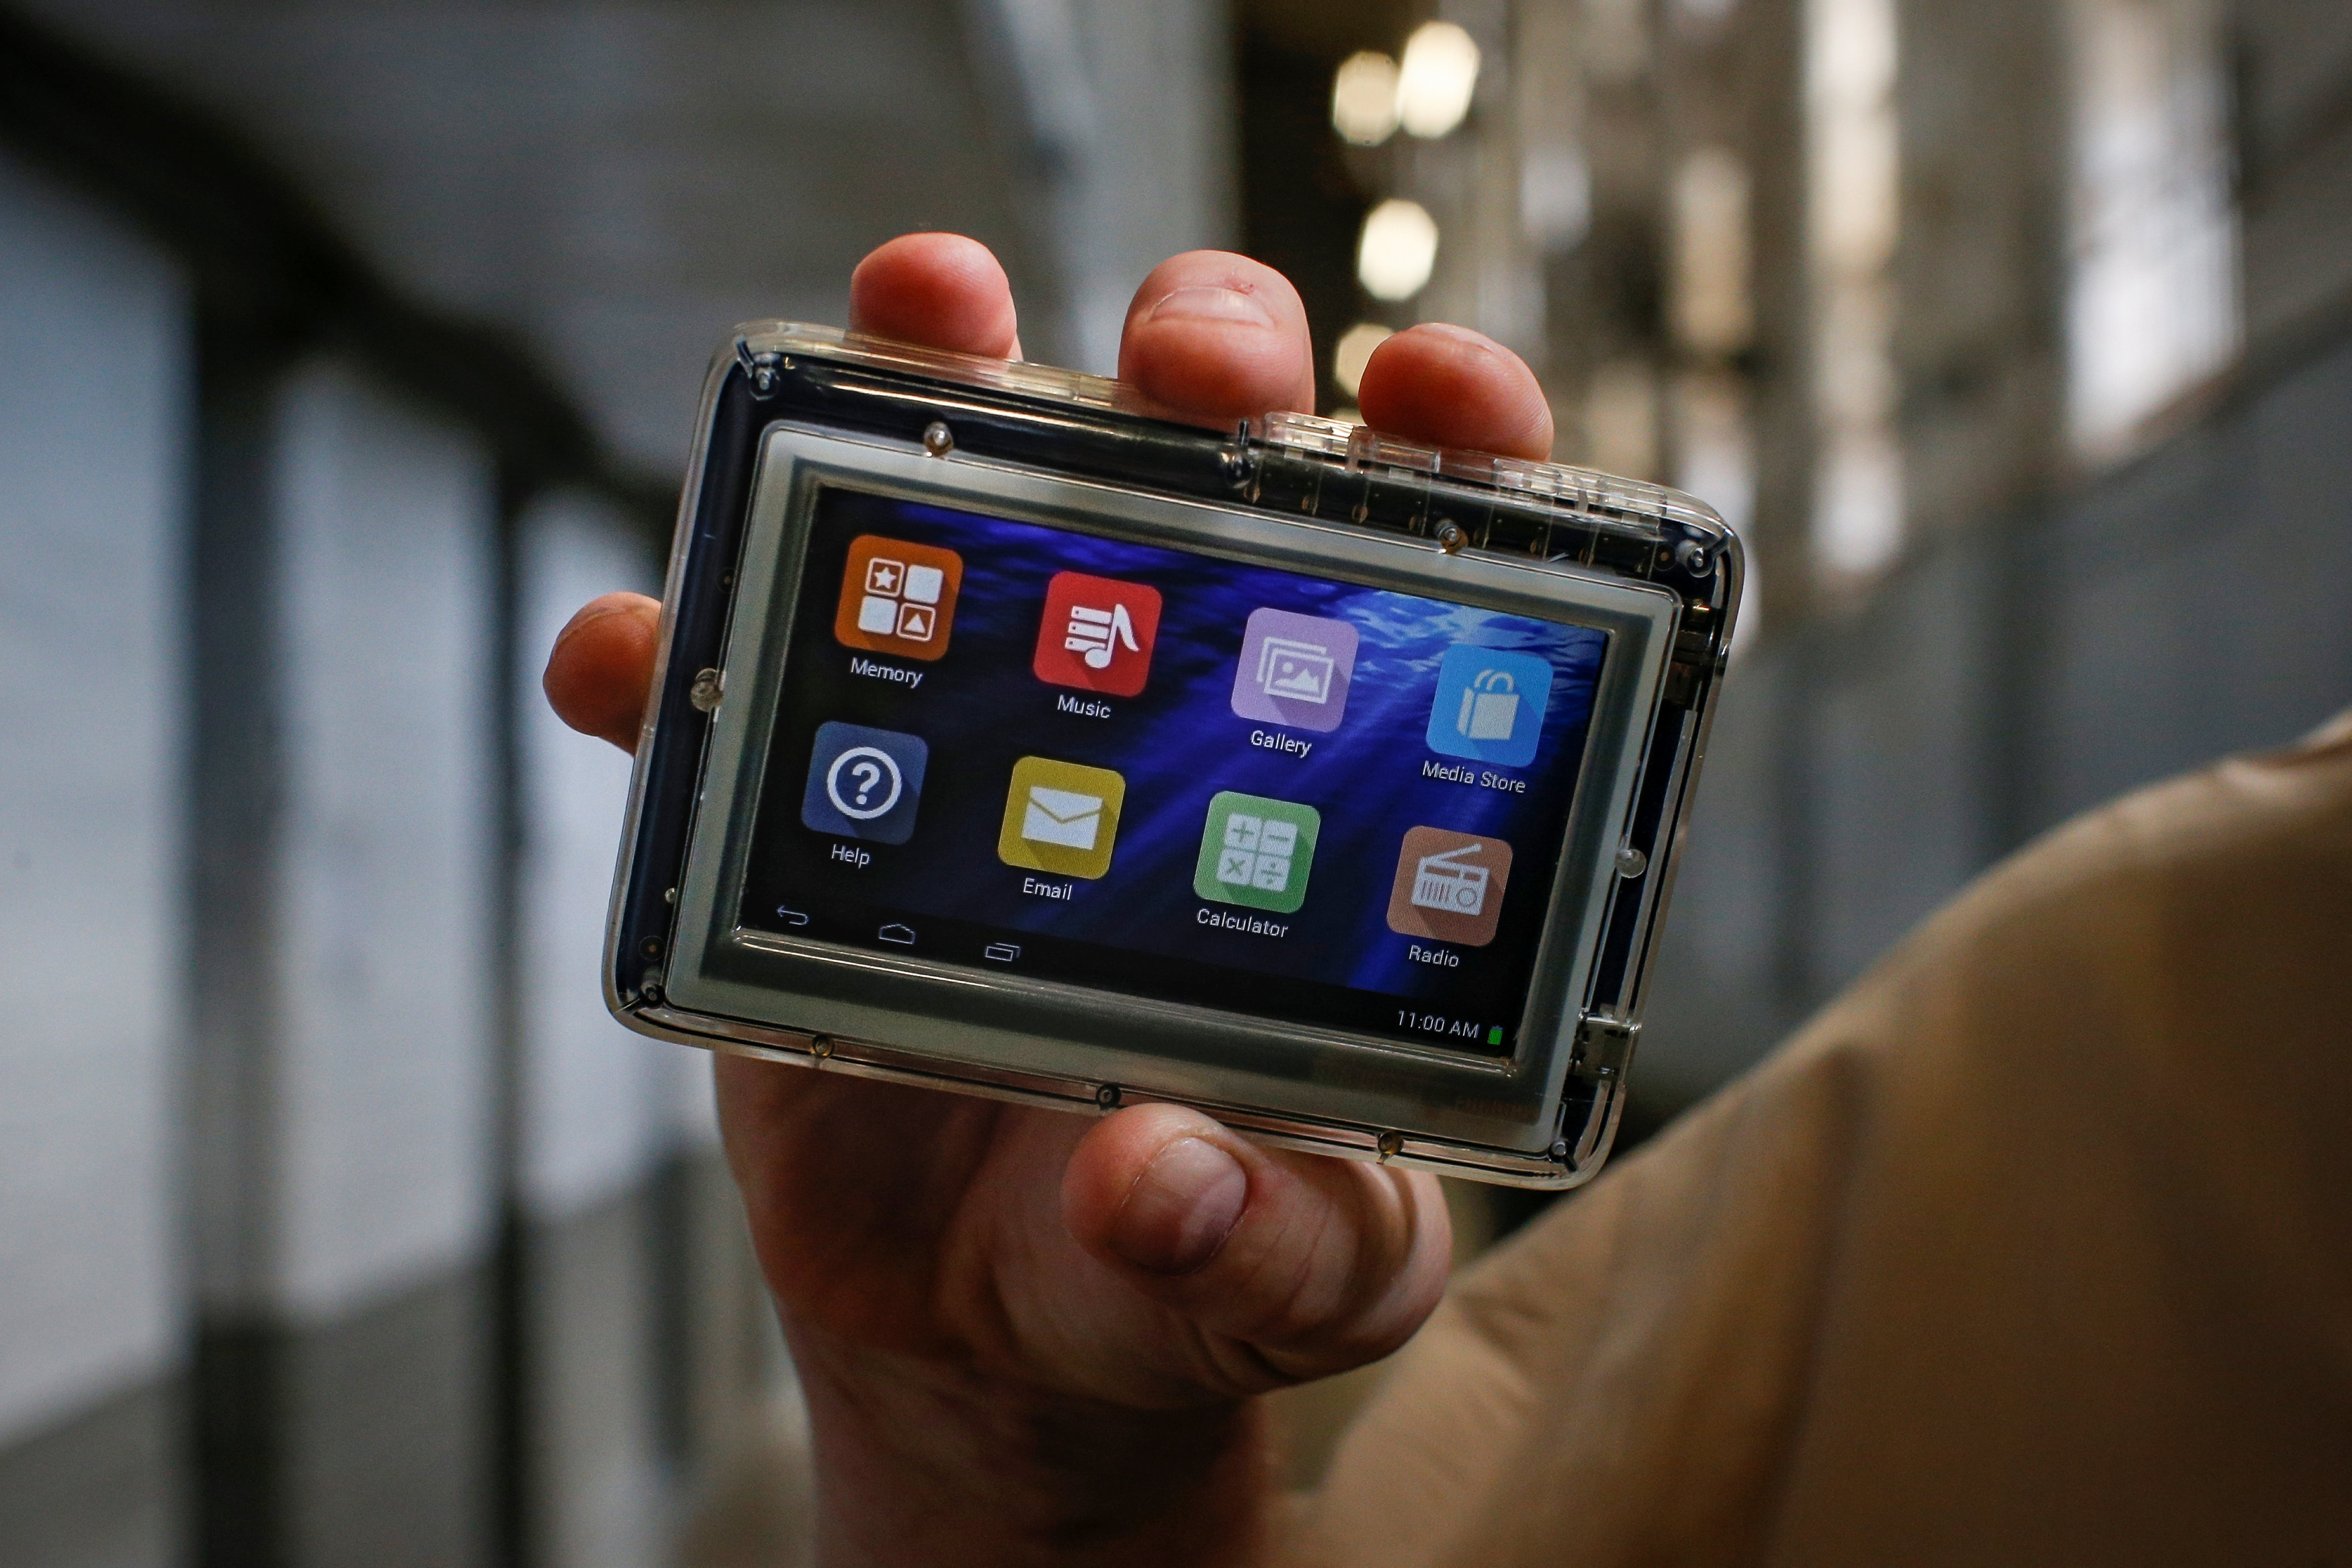 Inmate Steven Goff shows his JPay tablet device inside the East Jersey State Prison in Rahway, New Jersey